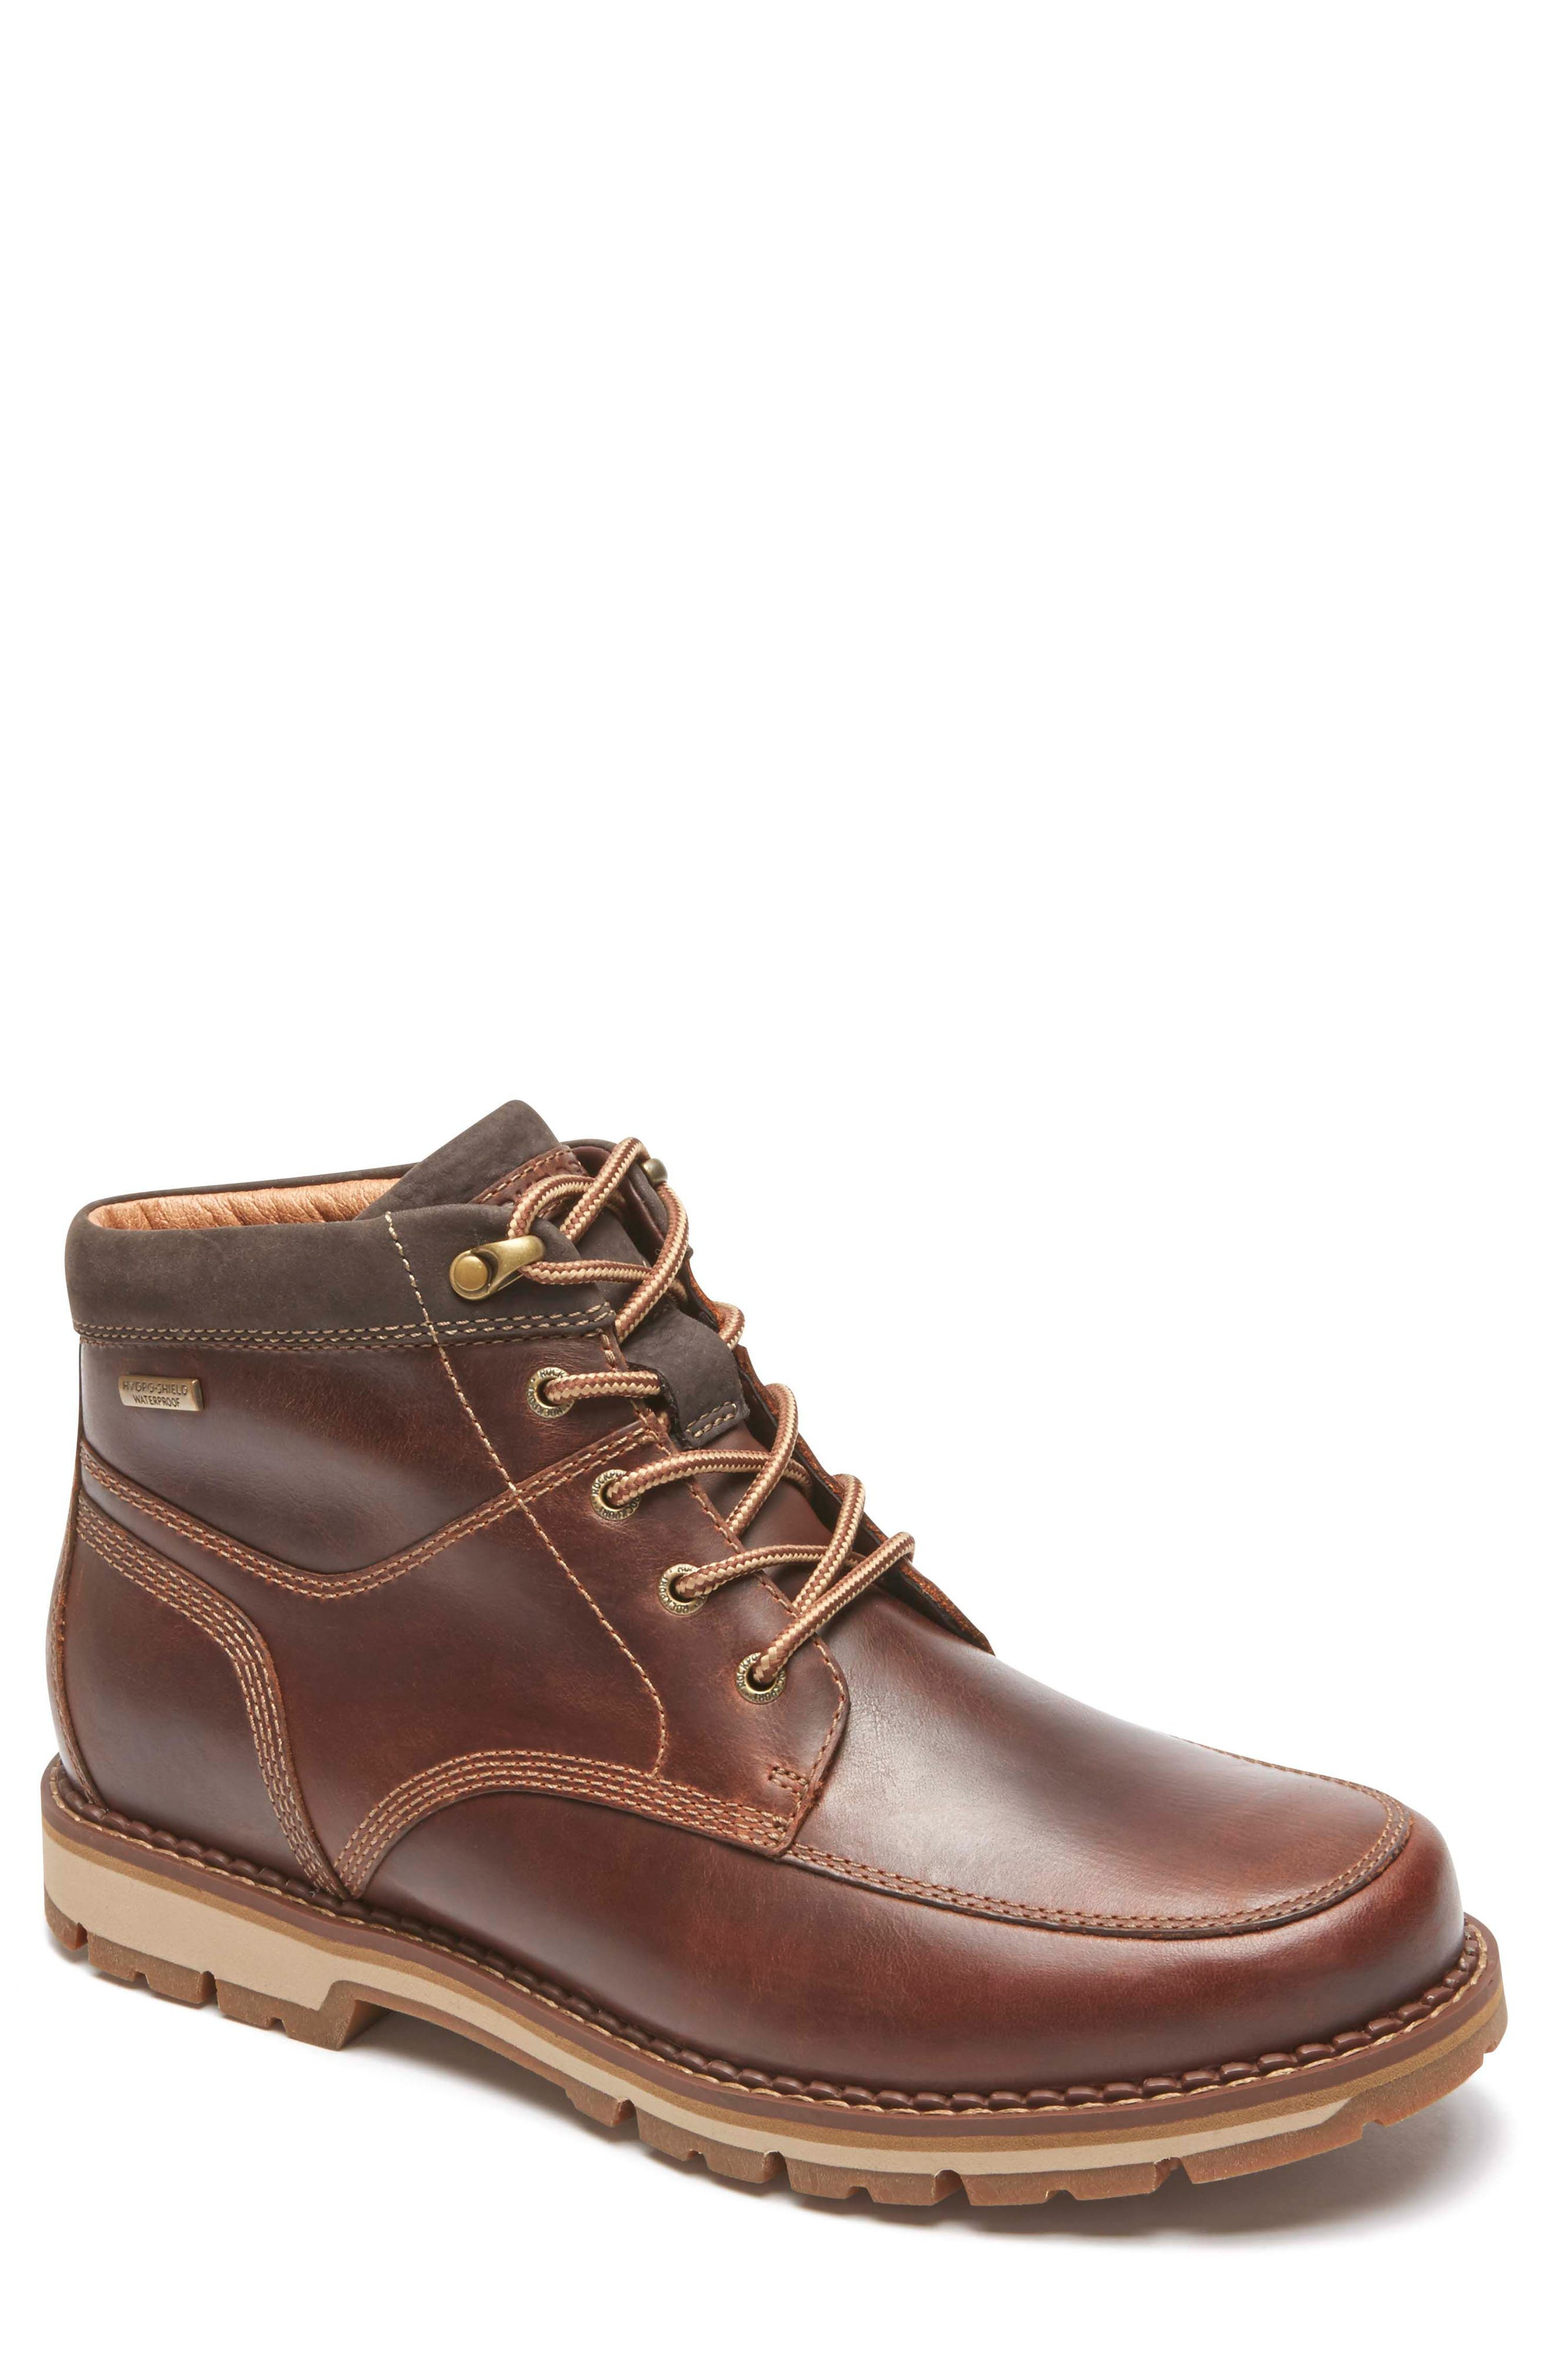 Centry Moc Toe Boot,                             Main thumbnail 1, color,                             200